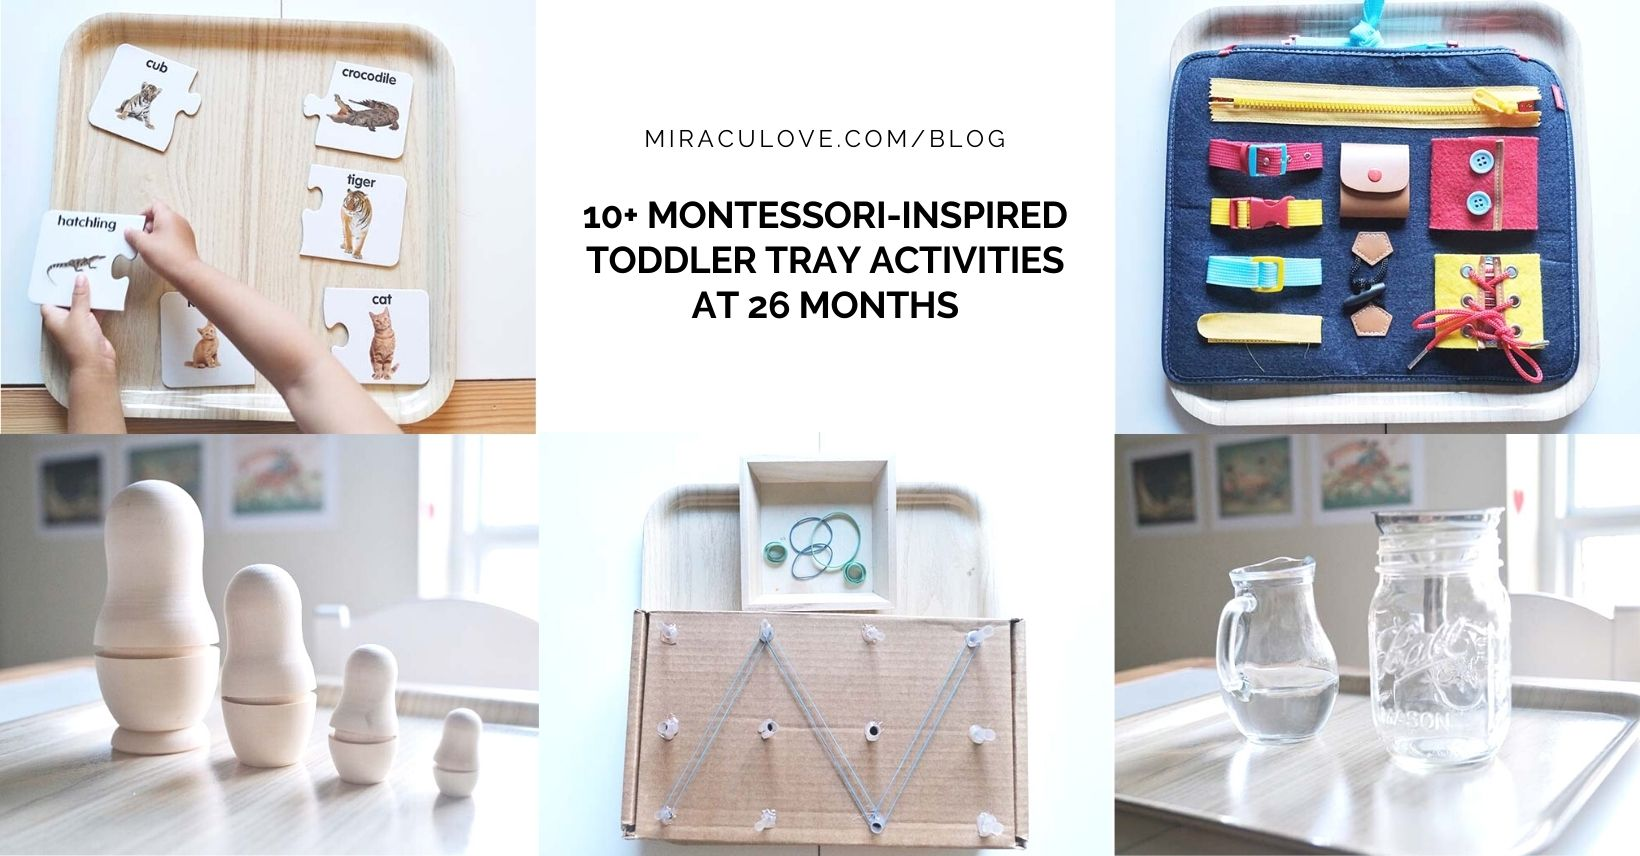 10+ Montessori-Inspired Toddler Tray Activities at 26 Months